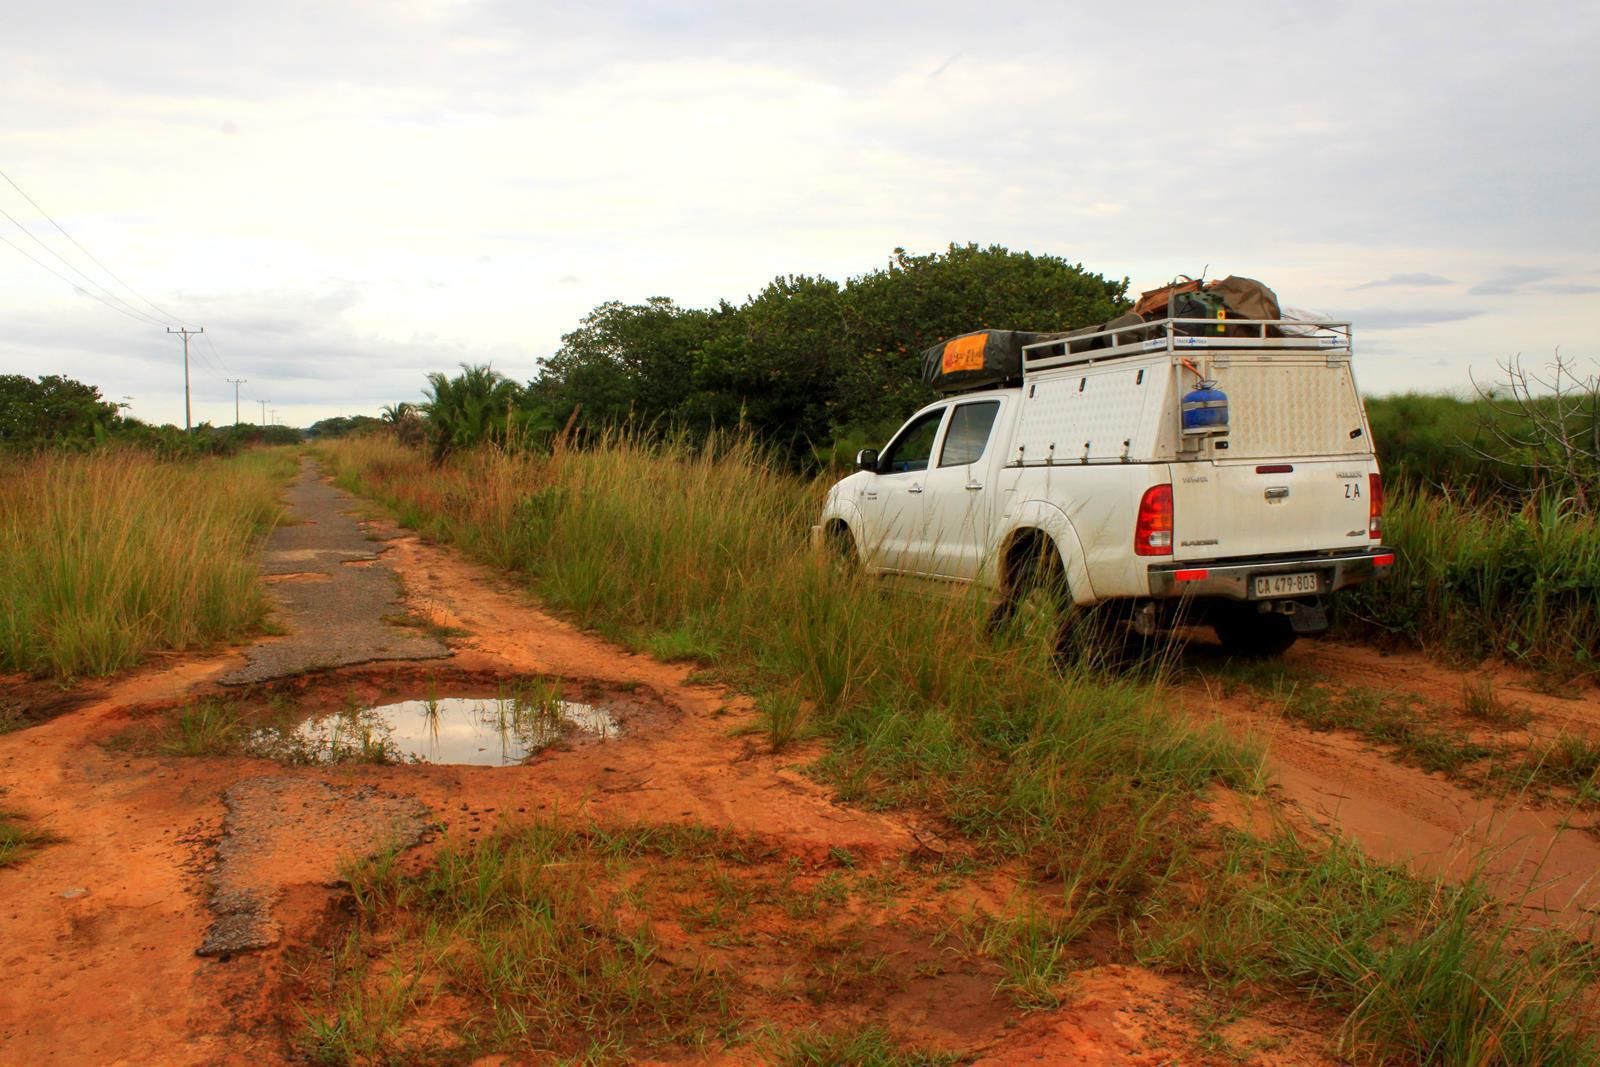 A section of the road from Ponta de Malongane to Maputo.